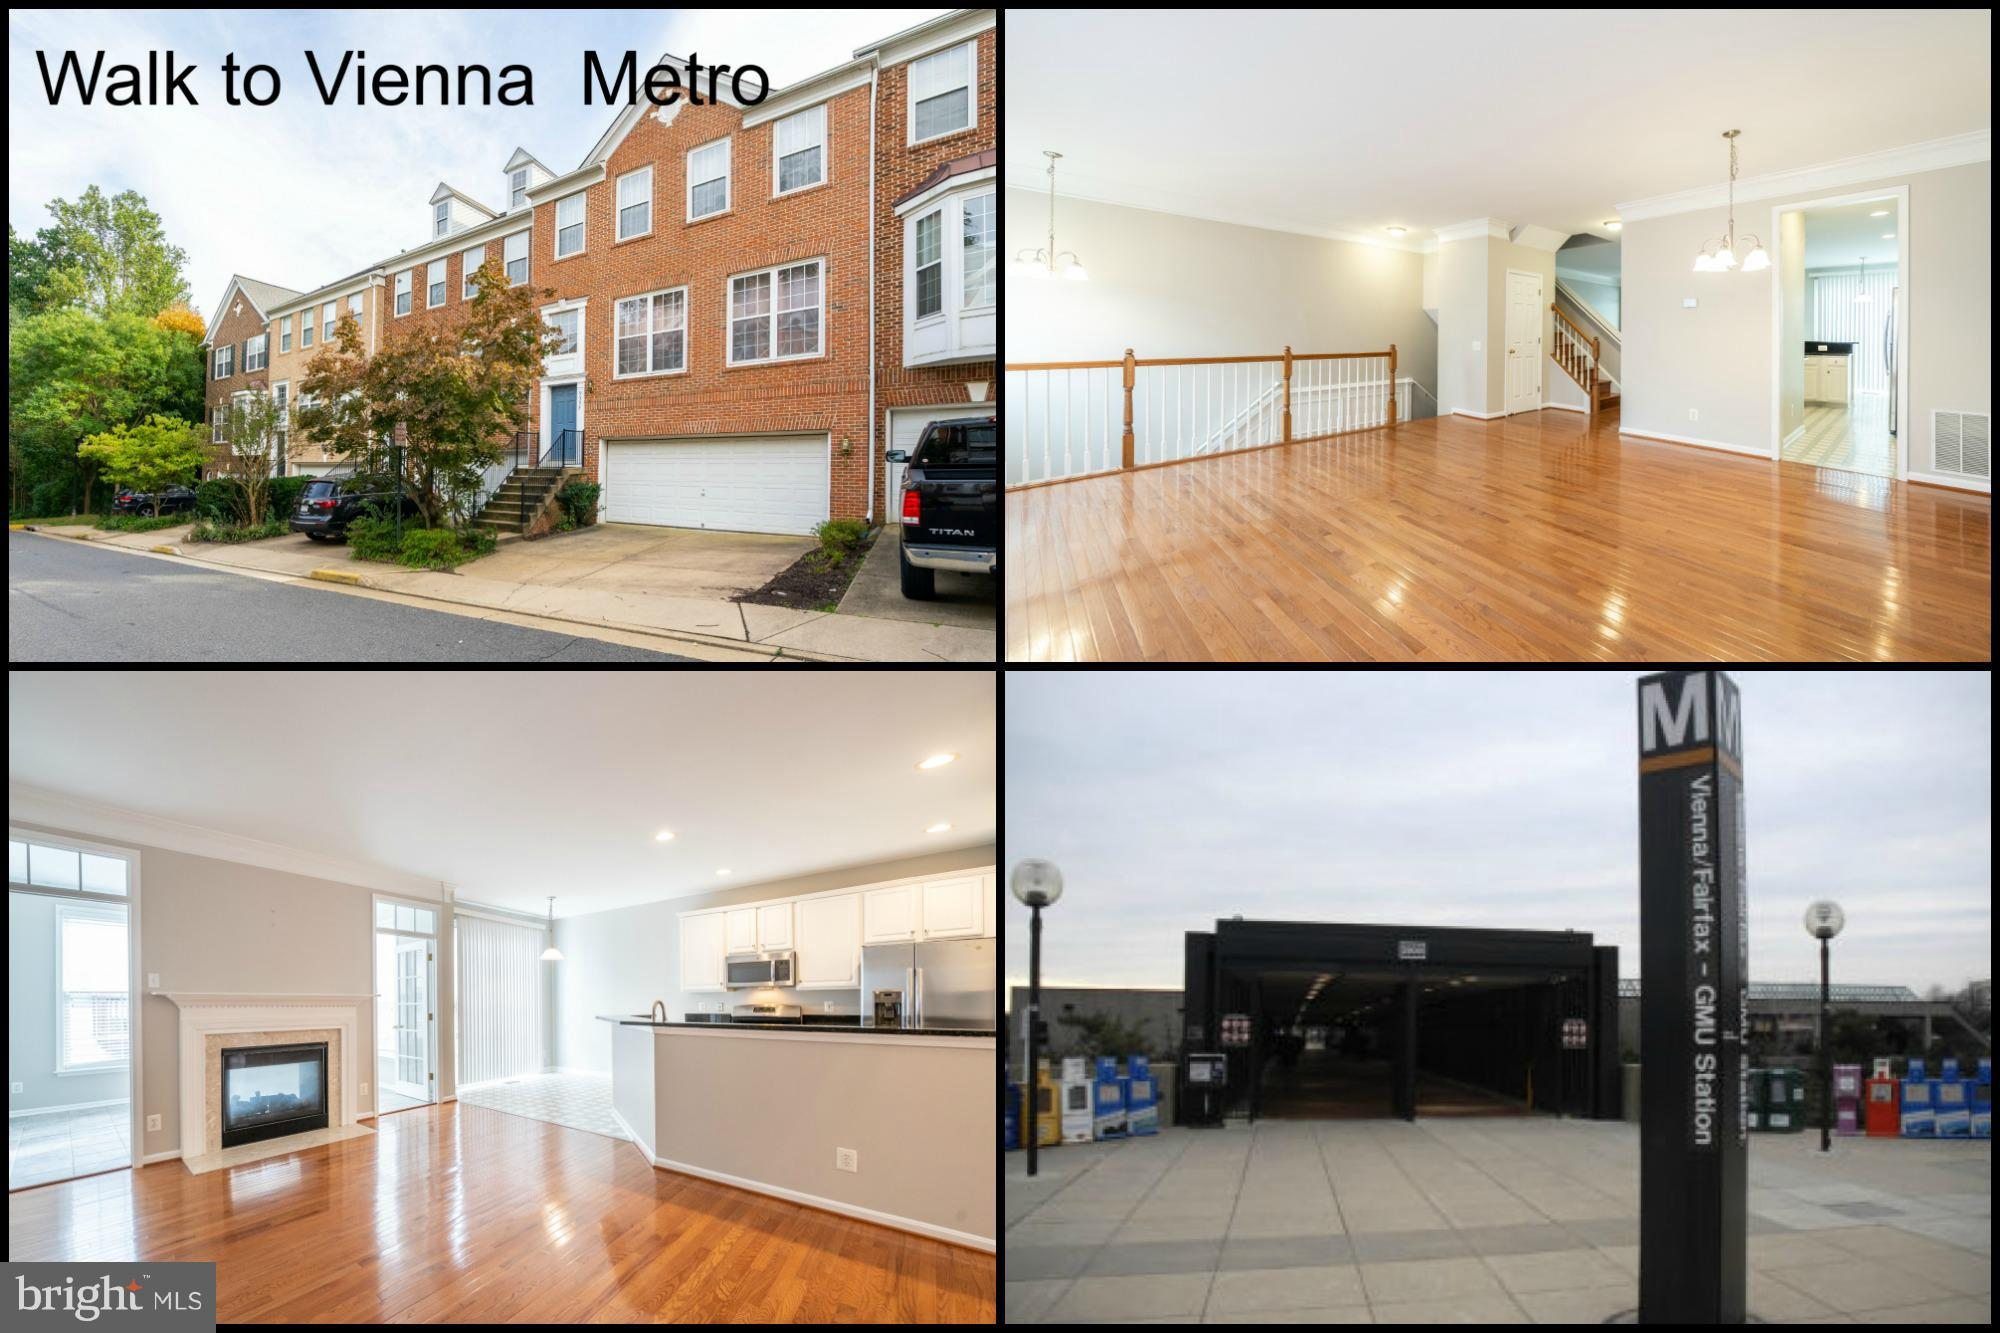 Large 2-car garage TH walking distance to Vienna Metro. Hardwood floors, neutral decor, gas fireplace, freshly painted,sunroom, large walk-in closet in MBR. Great commuter location, large open floorpan with ample storage. NO PETS.